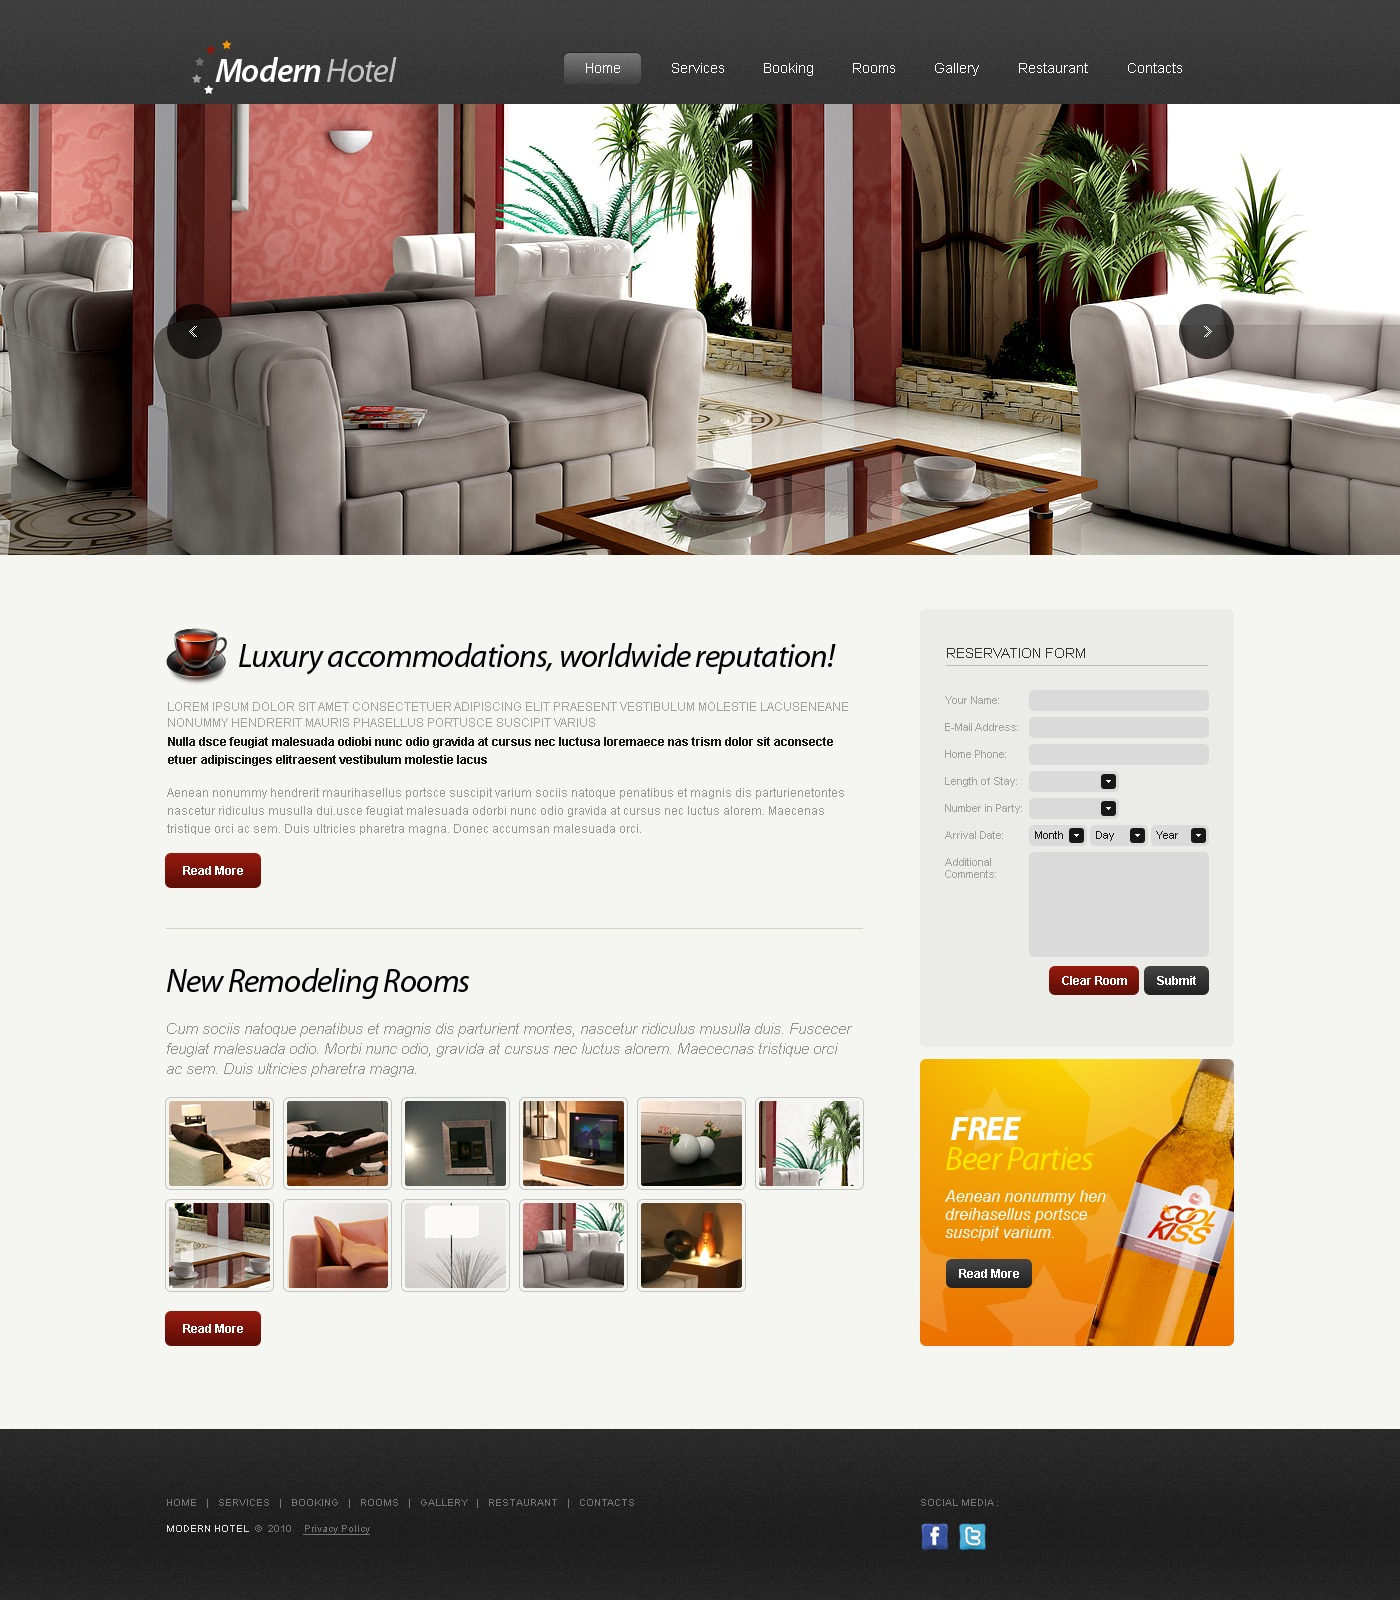 The Modern Hotel PSD Design 54427, one of the best PSD templates of its kind (hotels, flash 8, wide), also known as modern hotel PSD template, royal motel PSD template, PSD template PSD template, exotic PSD template, building PSD template, events PSD template, interior PSD template, cozy PSD template, comfortable room PSD template, spacious PSD template, light PSD template, modern rest PSD template, pool PSD template, floor PSD template, stairs PSD template, staff PSD template, reception PSD template, testimonial PSD template, service PSD template, offer PSD template, booking PSD template, reservation PSD template, order PSD template, location PSD template, security PSD template, wedding PSD template, cerem and related with modern hotel, royal motel, PSD template, exotic, building, events, interior, cozy, comfortable room, spacious, light, modern rest, pool, floor, stairs, staff, reception, testimonial, service, offer, booking, reservation, order, location, security, wedding, cerem, etc.